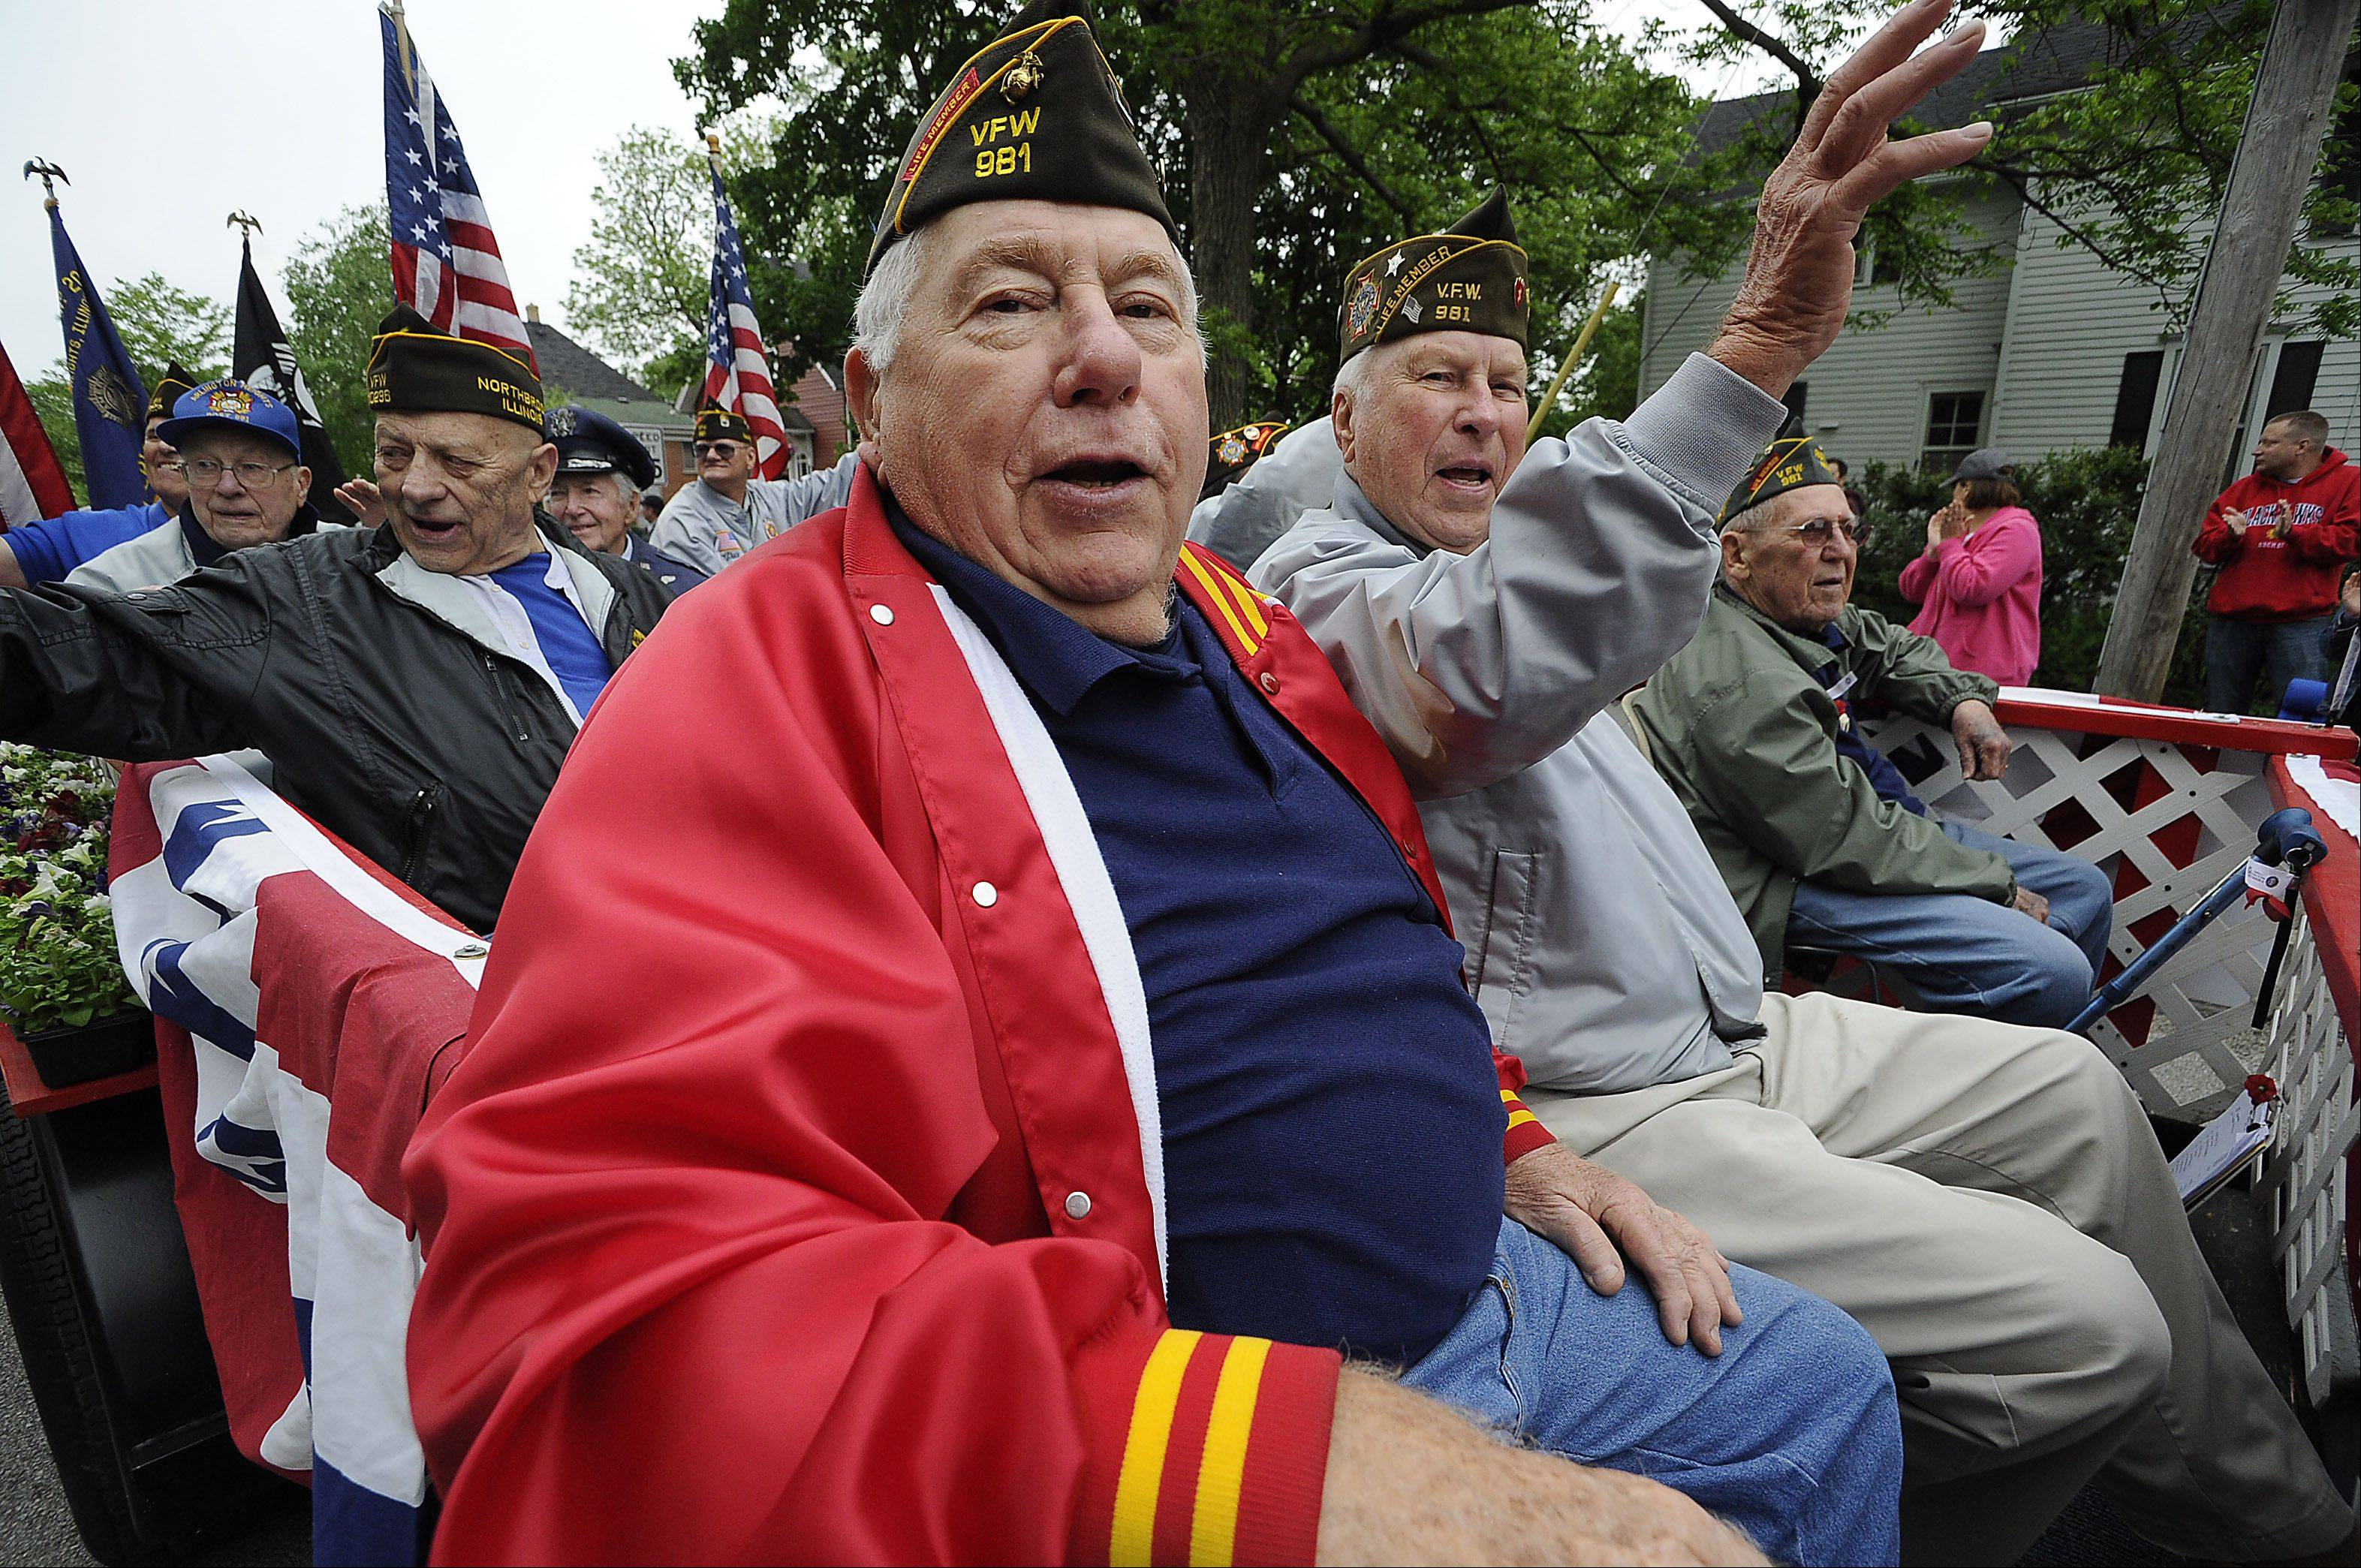 Chuck Shields of Arlington Heights and Leo Larson of Kildeer, both members of the Veterans of Foreign Wars Post 981 and Korean War veterans, ride Monday in the Arlington Heights Memorial Day parade.